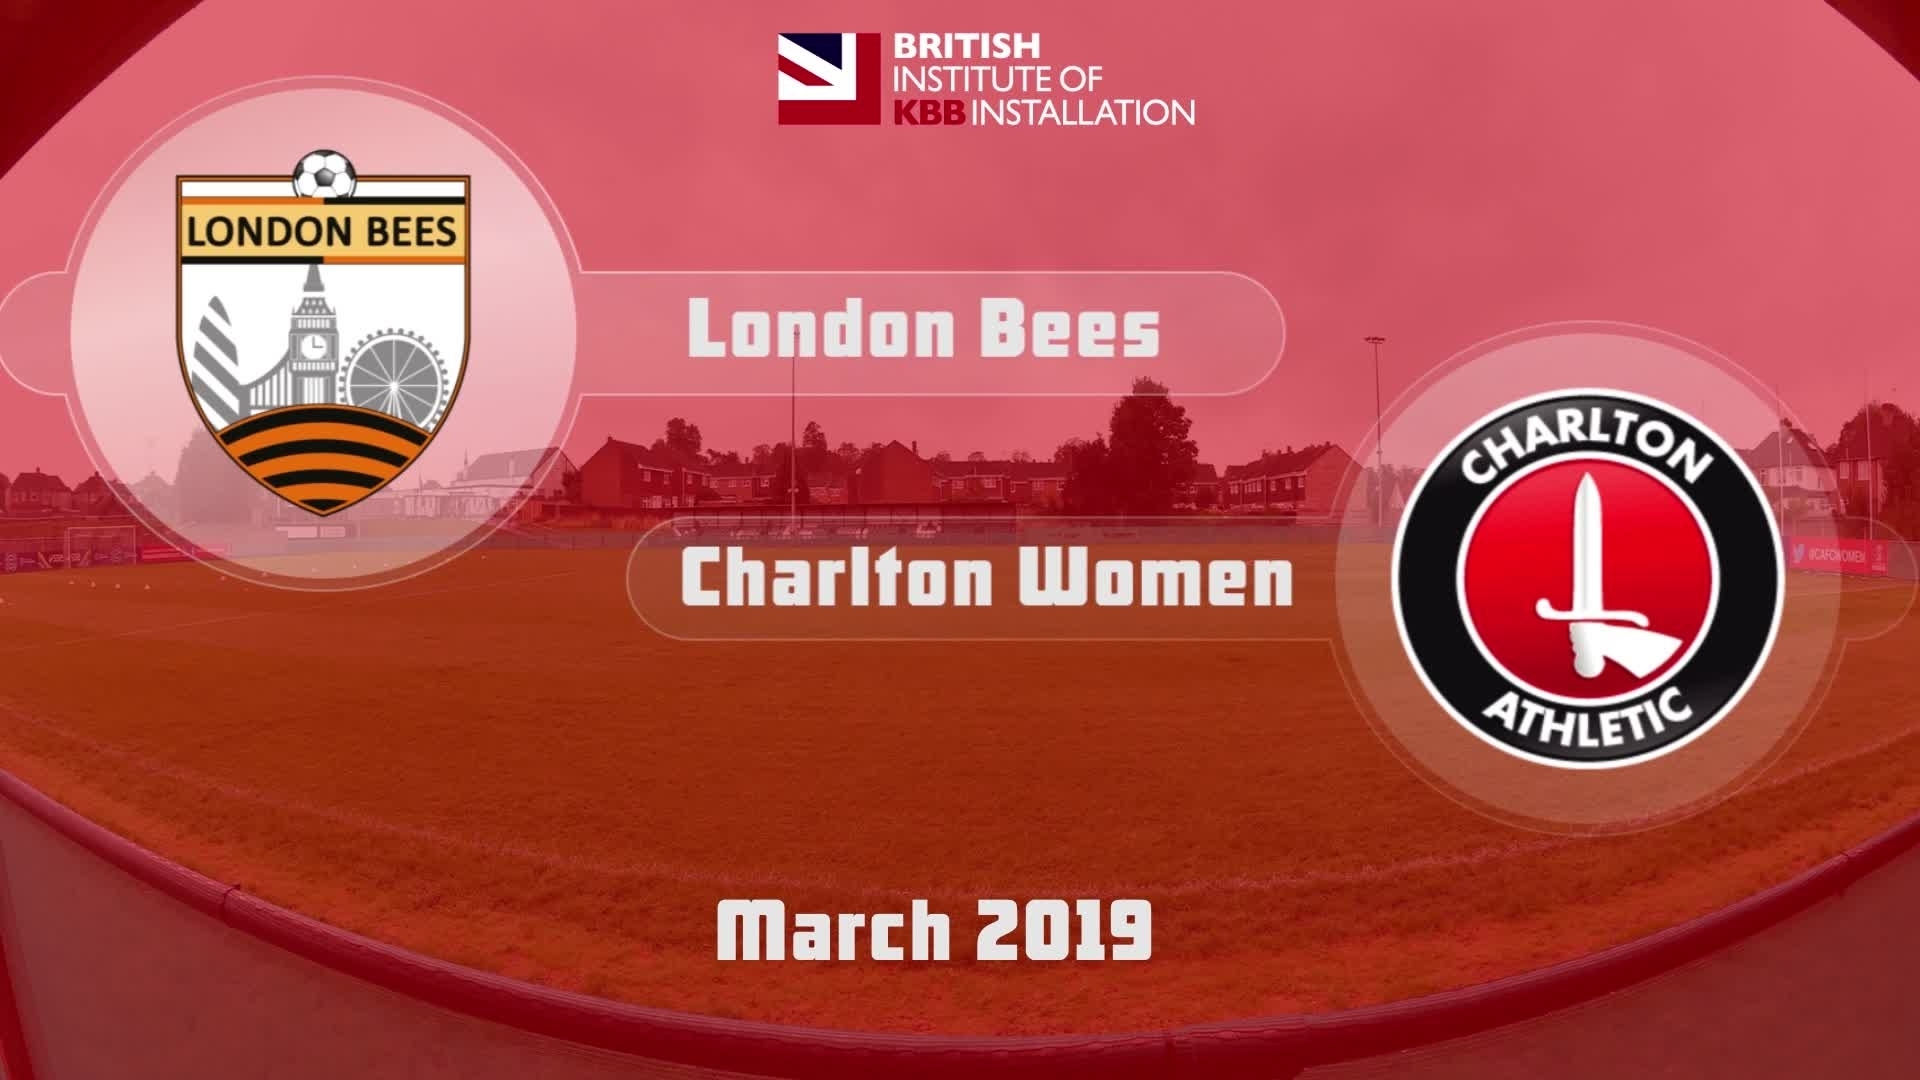 WOMEN'S HIGHLIGHTS | London Bees 1 Charlton Women 2 (March 2019)